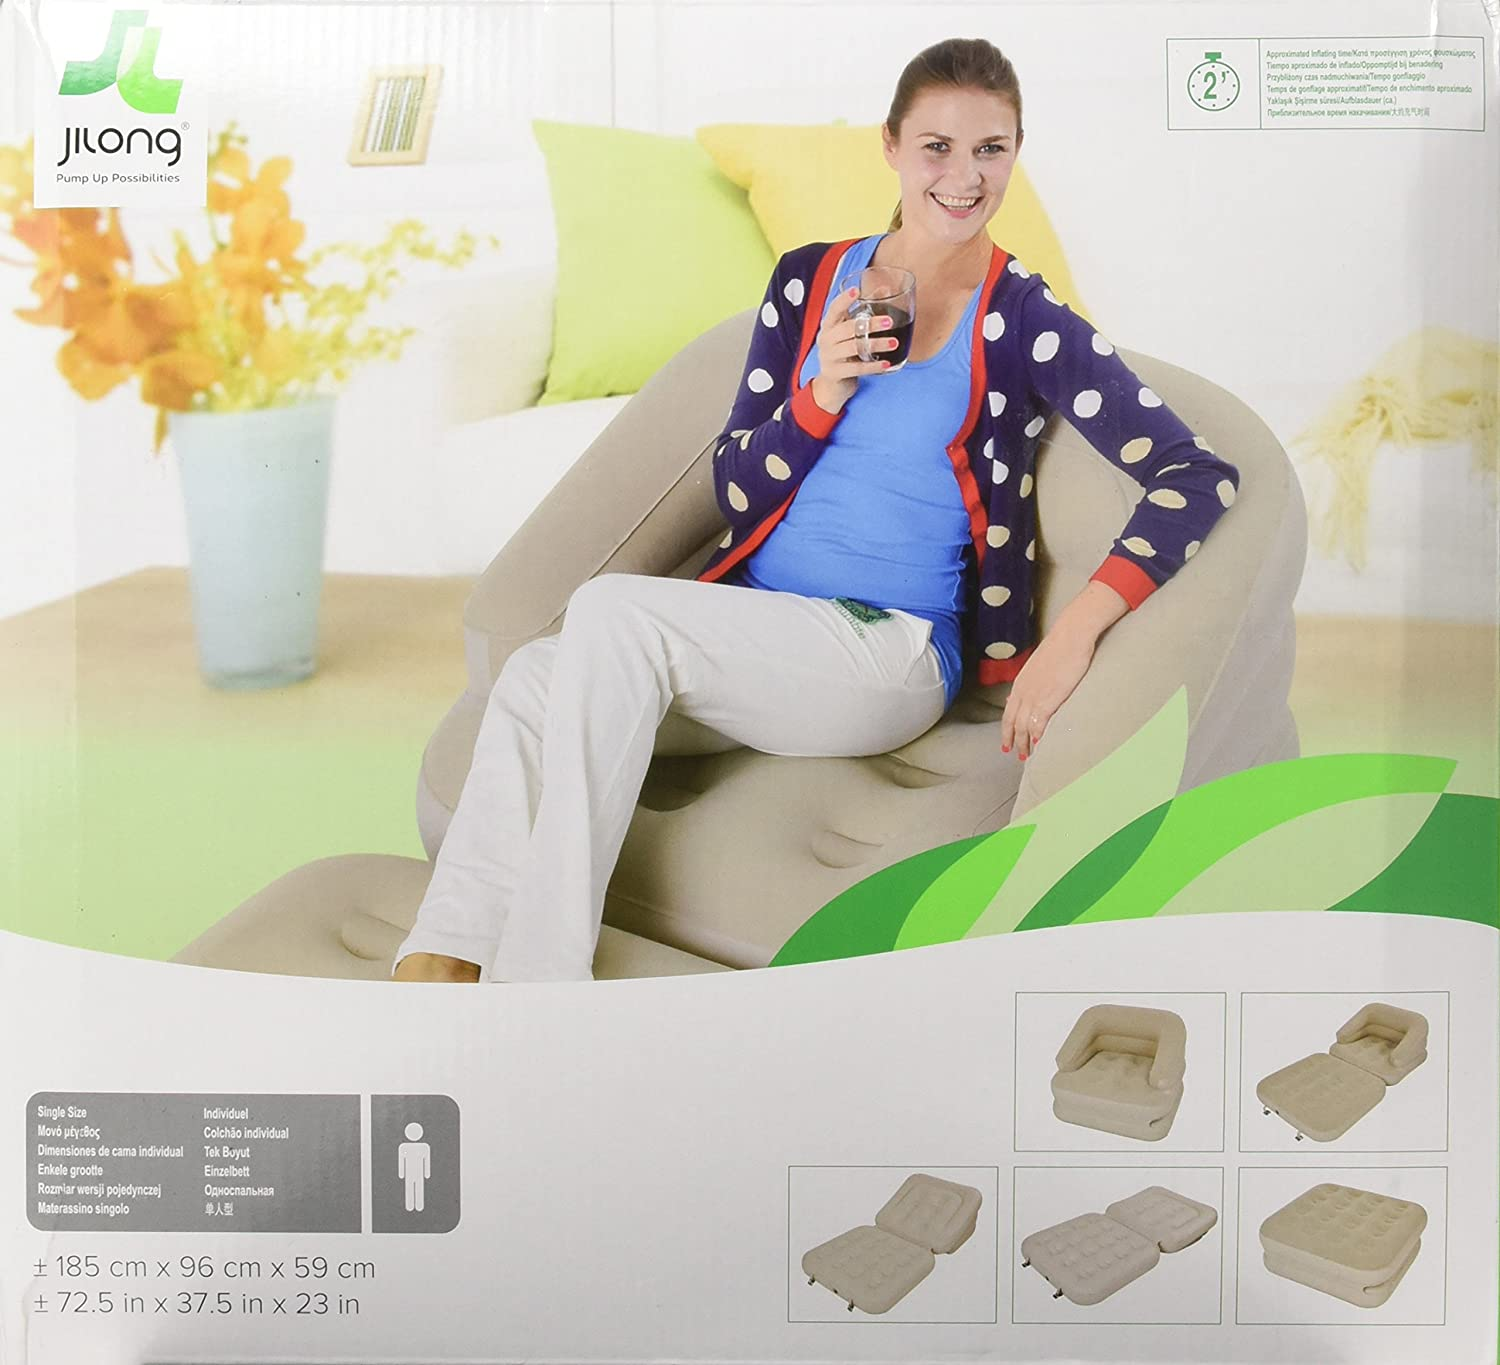 Jilong Multi-Functional Inflatable Lounge Chair Bed